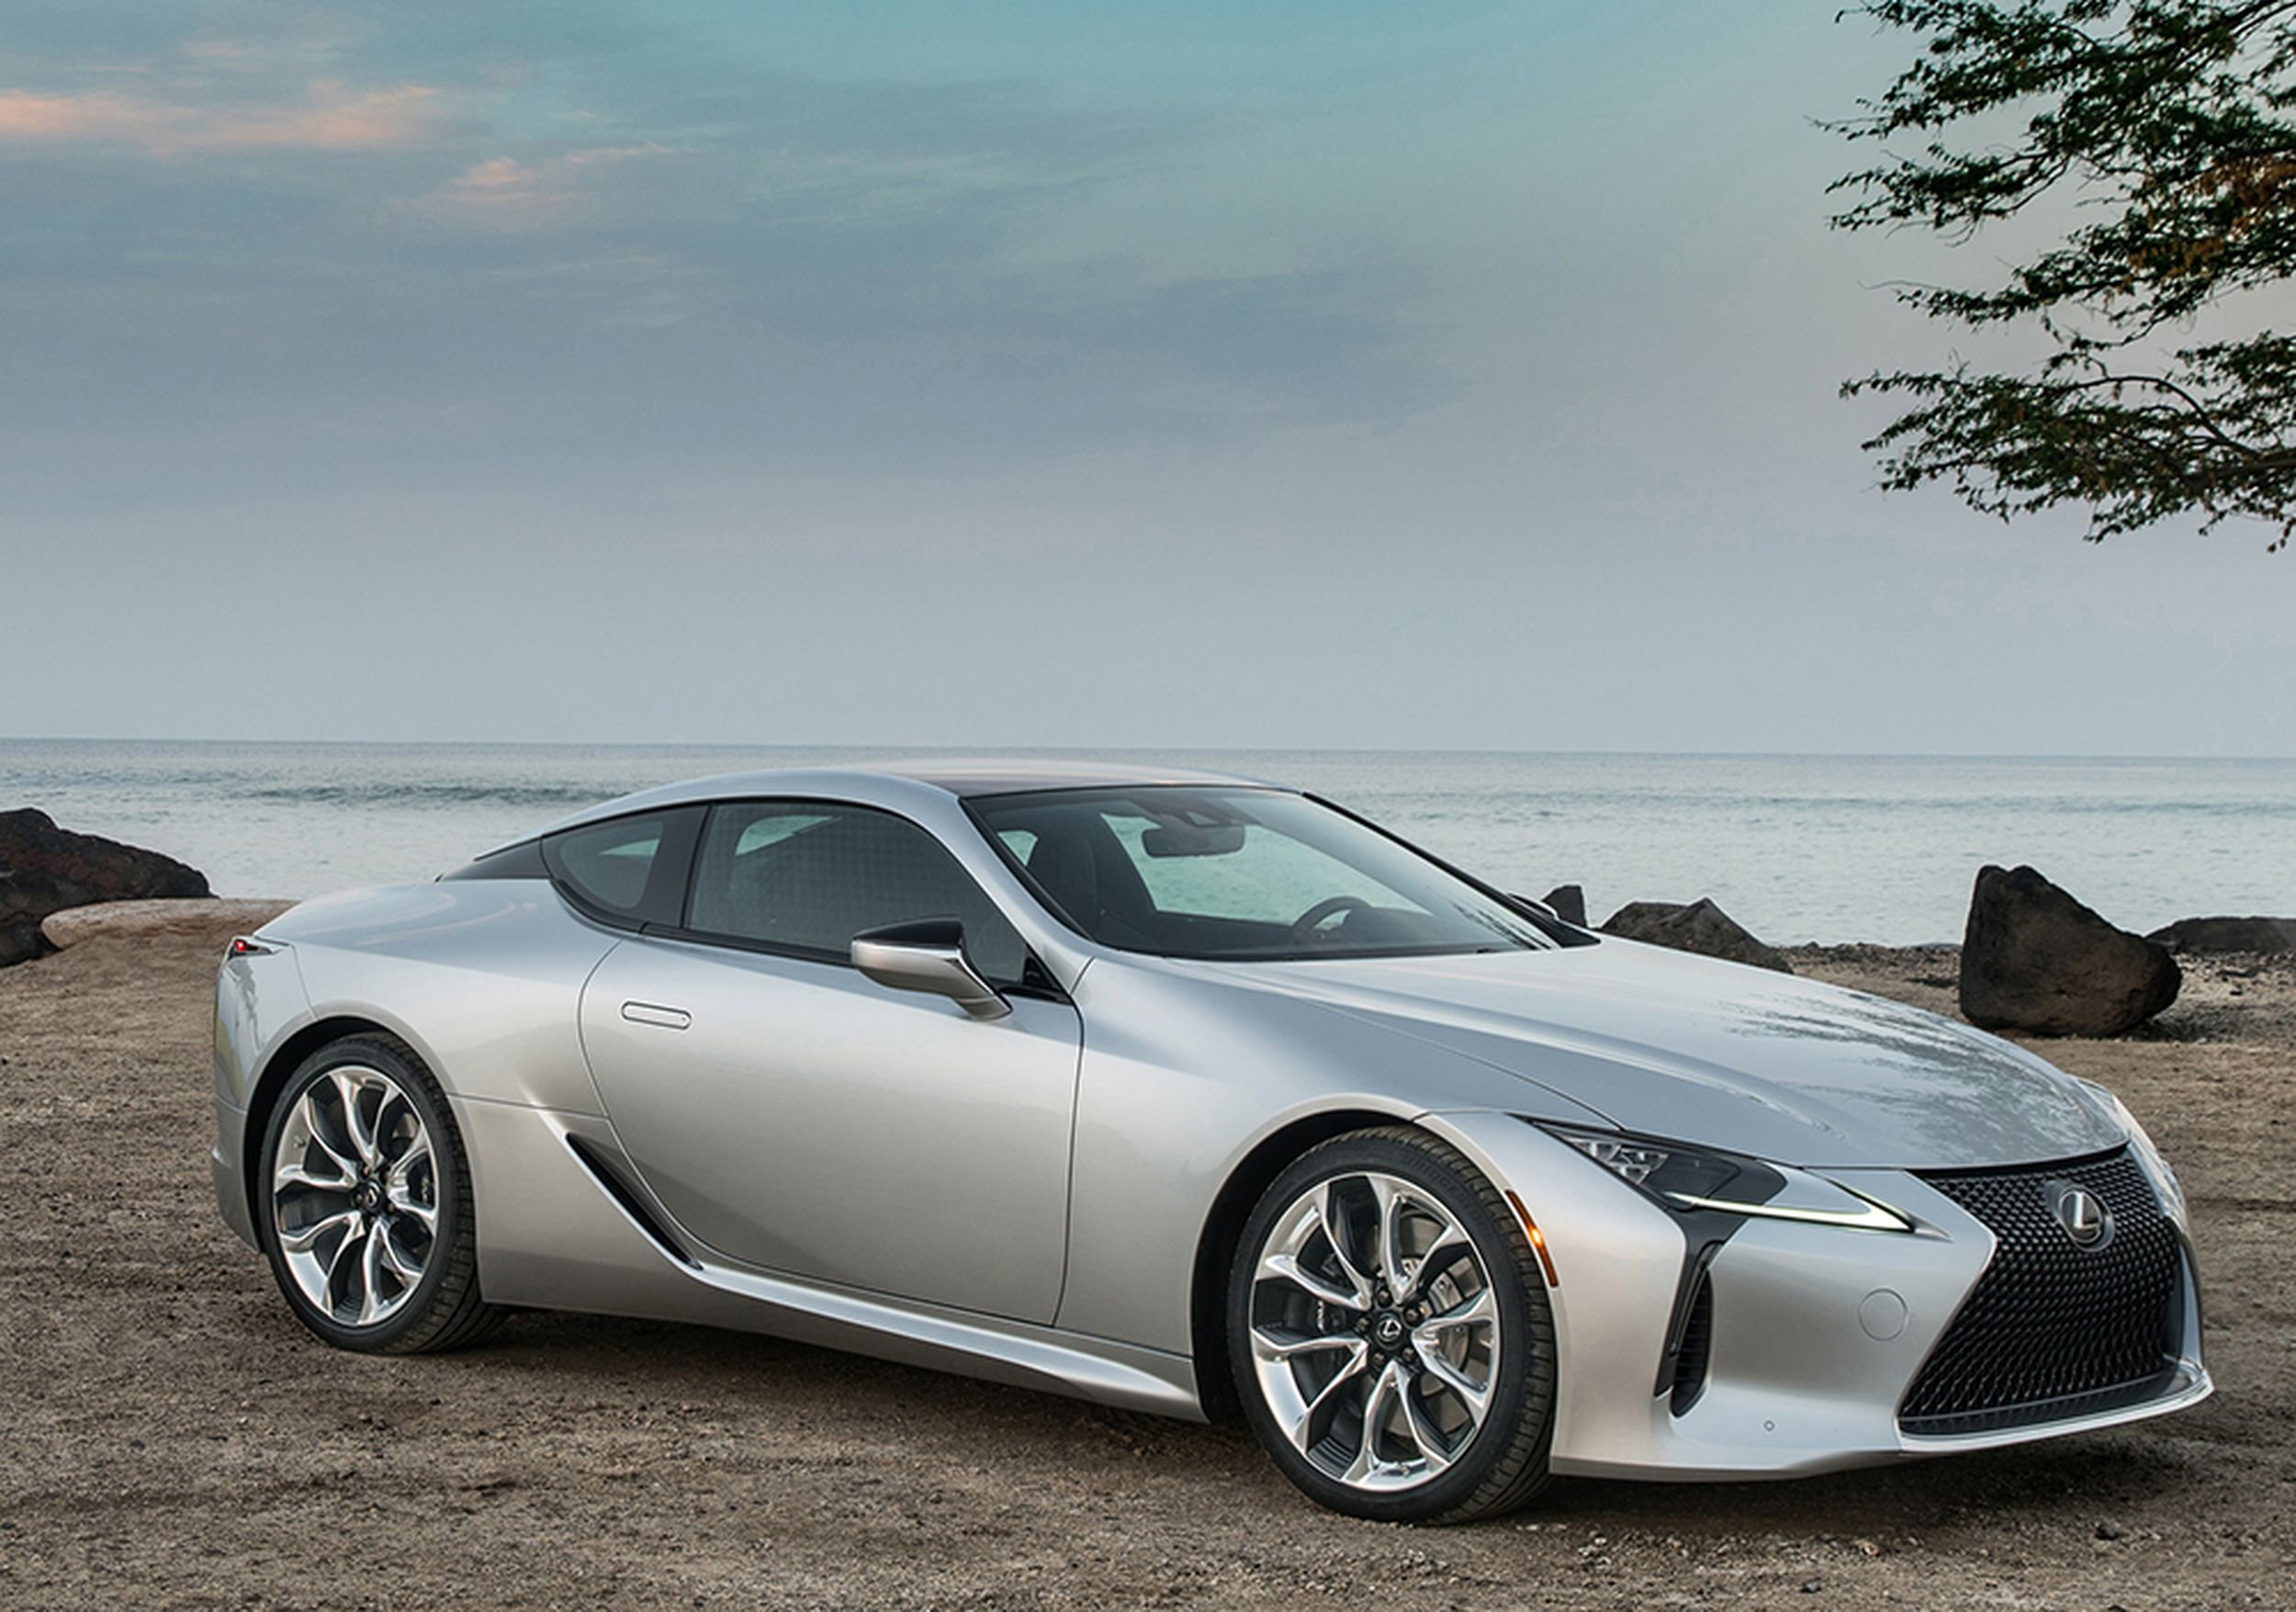 lexus lc 500h hybrid is a strong challenger in the gt segment the spokesman review lexus lc 500h hybrid is a strong